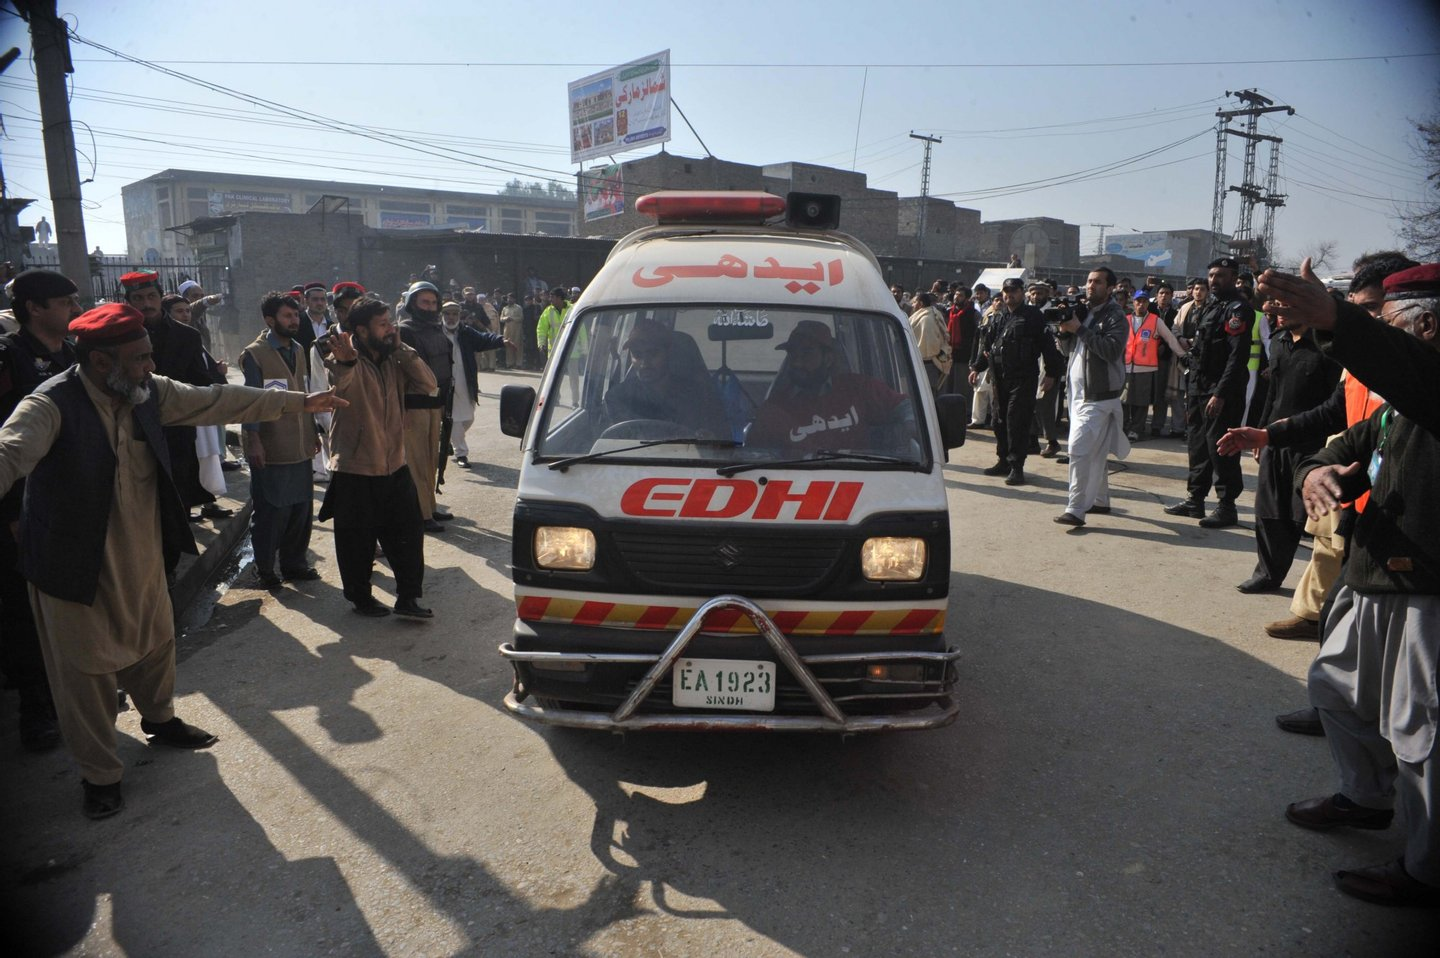 An ambulance carrying injured victims enters a hospital following an attack by gunmen at Bacha Khan university in Charsadda, about 50 kilometres from Peshawar, on January 20, 2016. At least 21 people died in an armed assault on a university in Pakistan on January 20, where witnesses reported two large explosions as security forces moved in under dense fog to halt the bloodshed. AFP PHOTO / Hasham AHMED / AFP / HASHAM AHMED (Photo credit should read HASHAM AHMED/AFP/Getty Images)